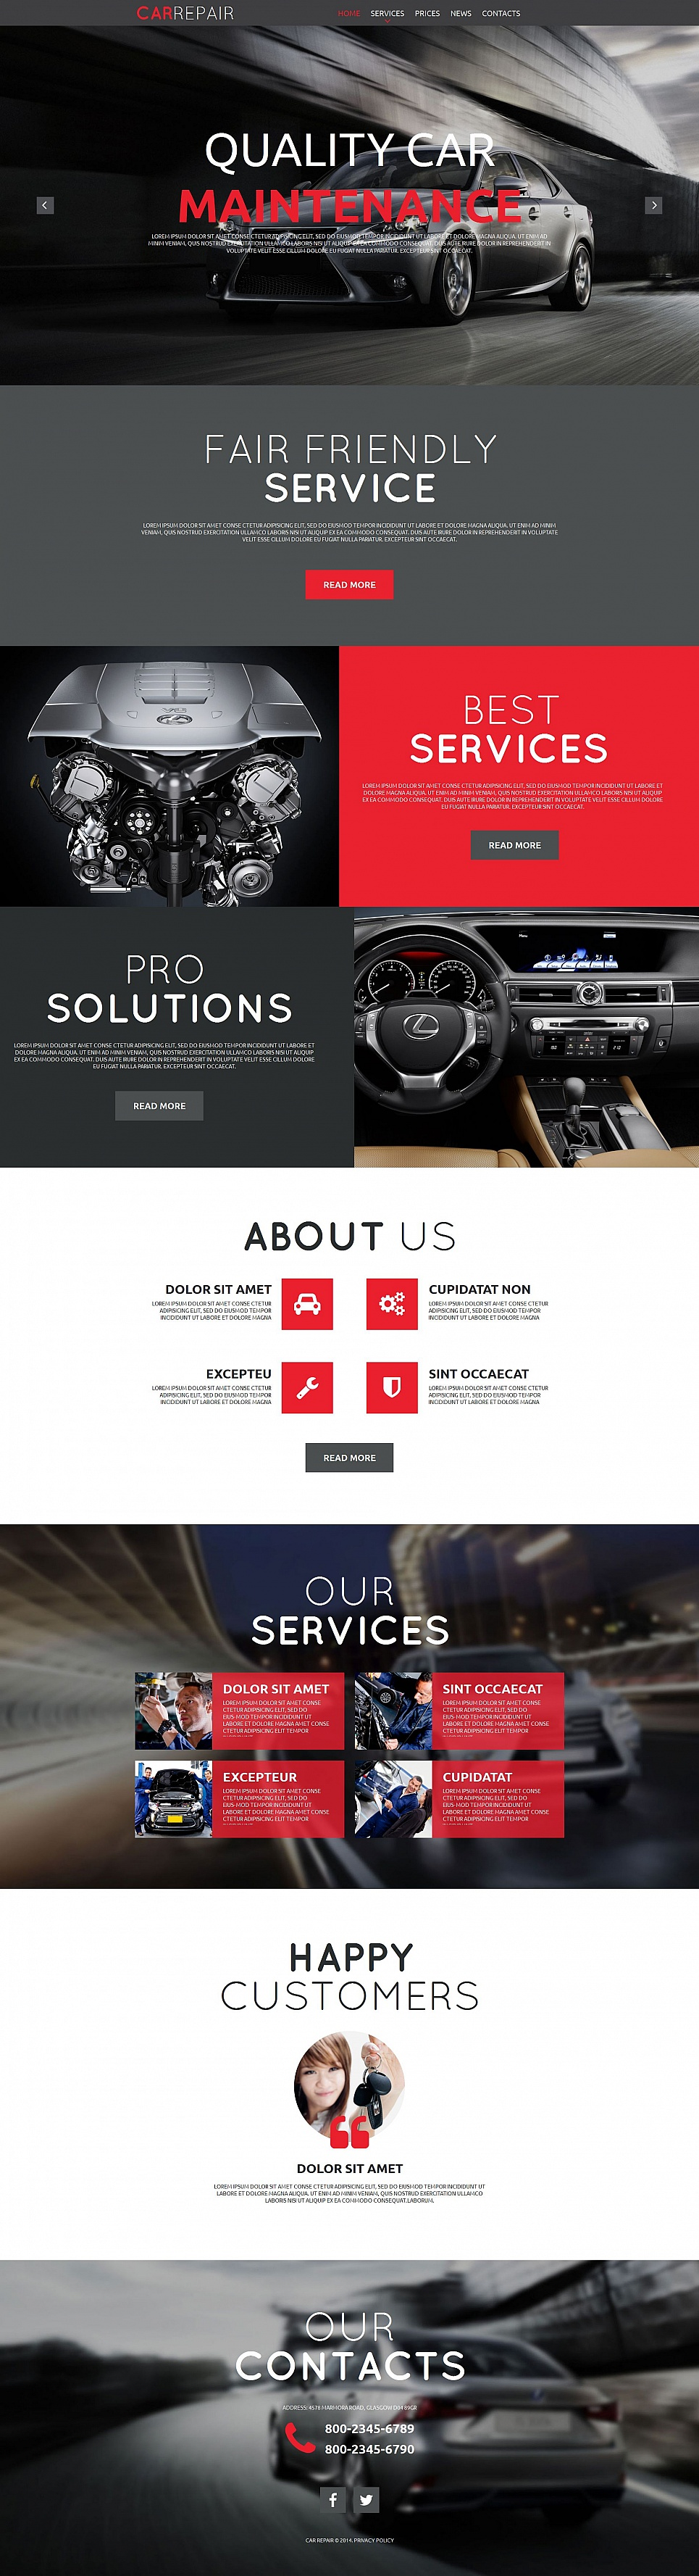 Car Repair Website Design with Huge Typography - image